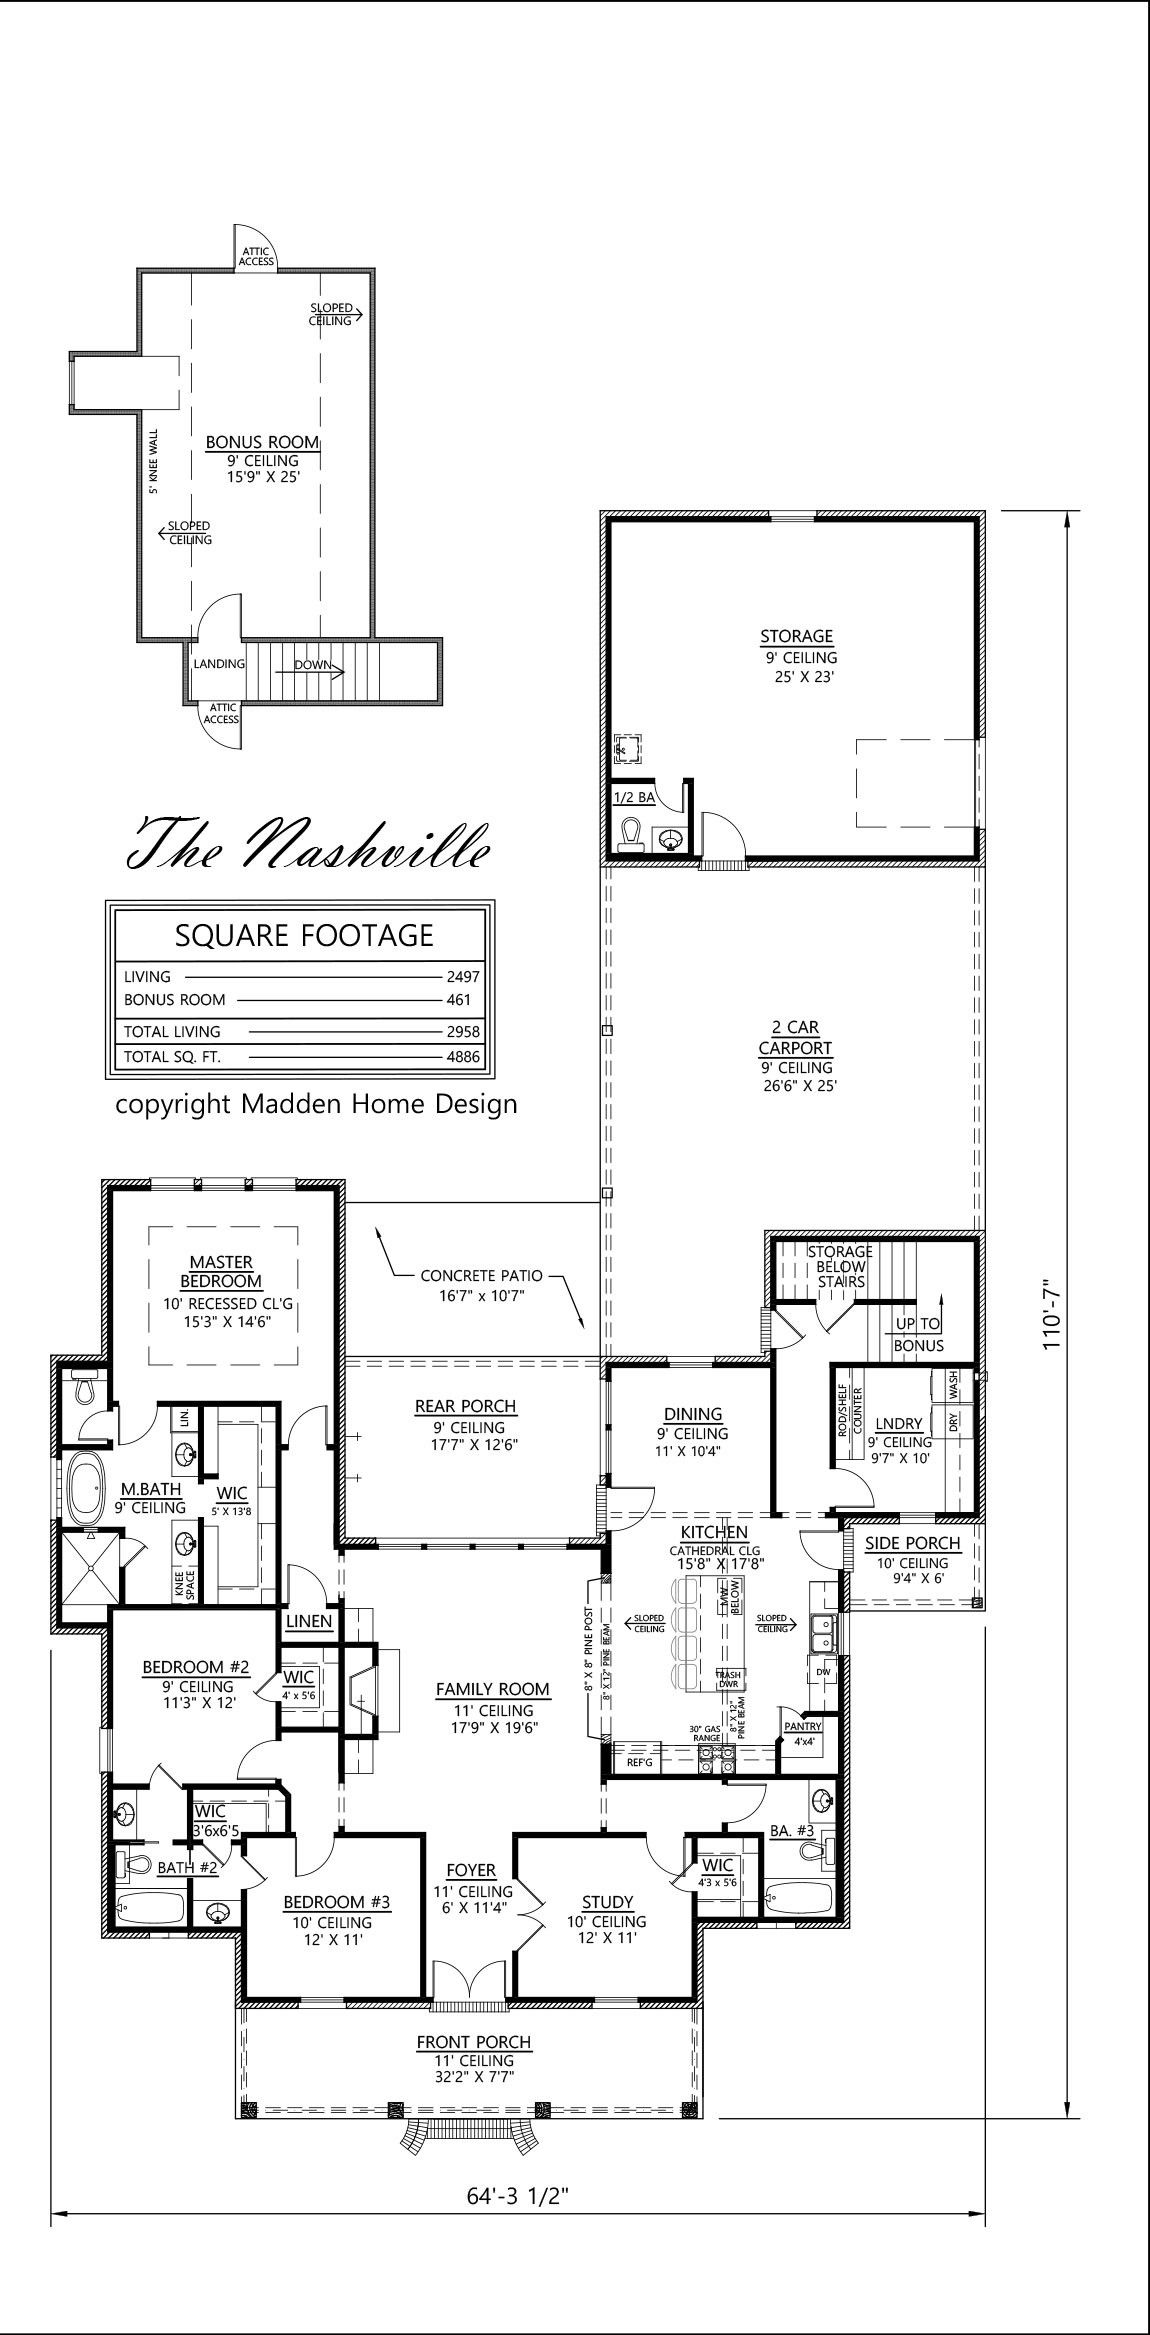 4 bedrooms, bonus, 3 baths, 3176 living + 525 bonus = 3701 total ...